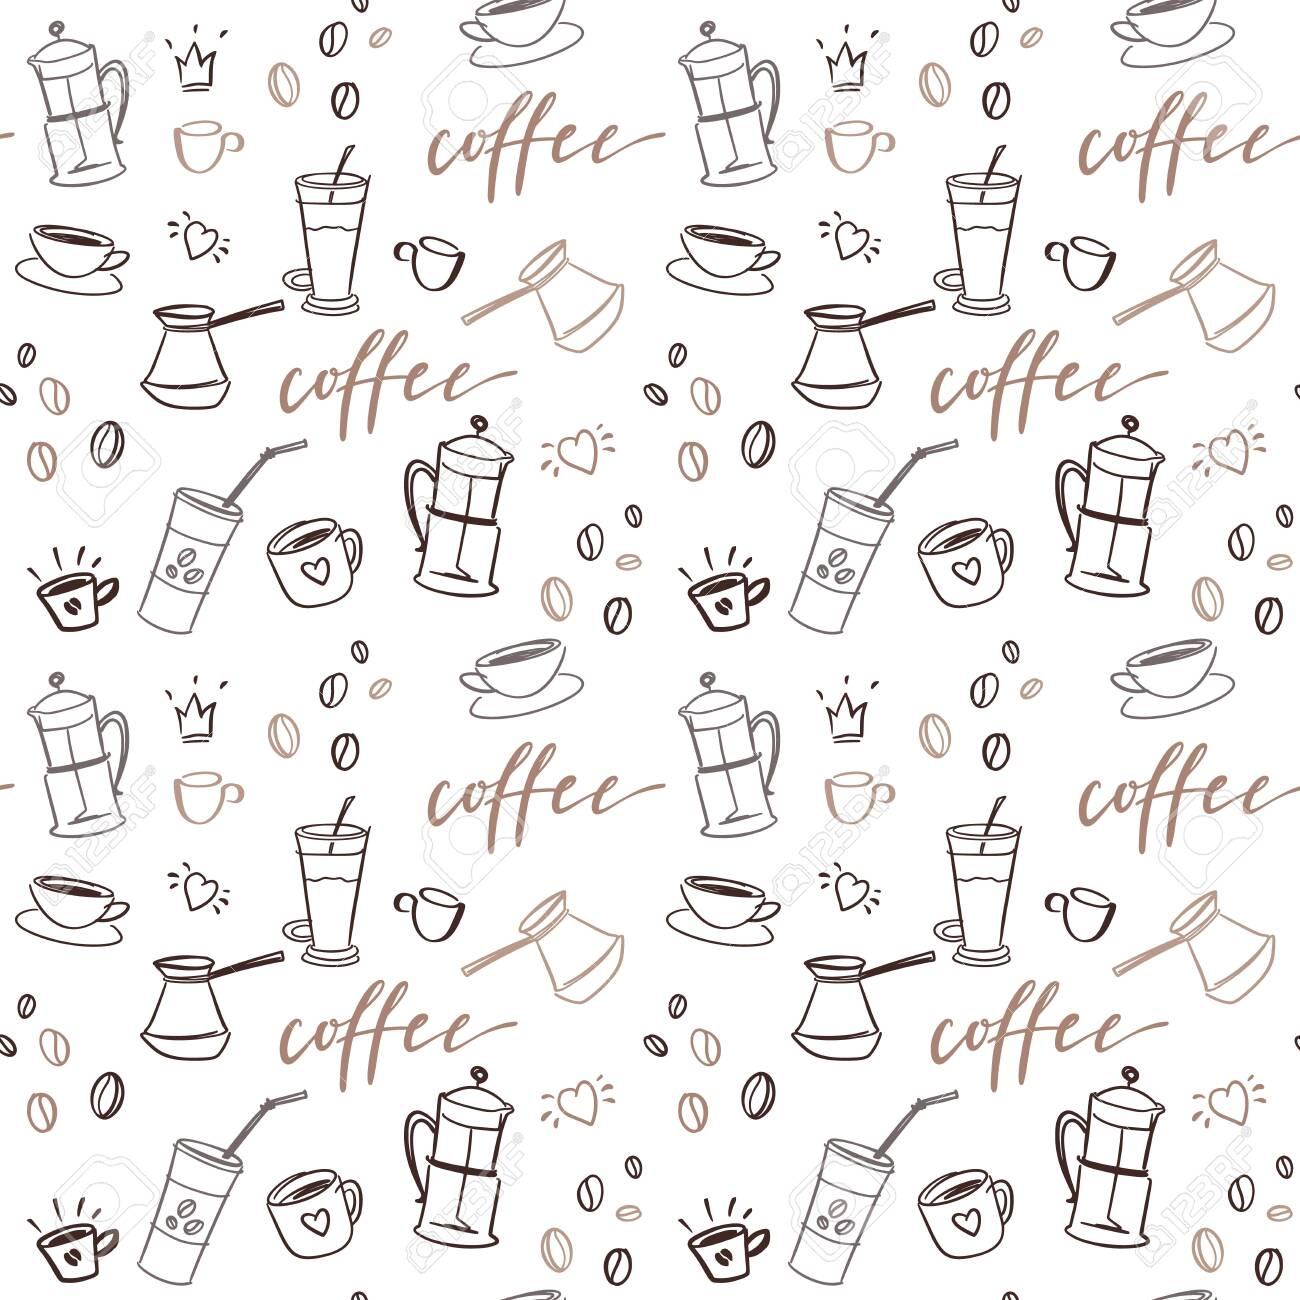 Background with beverages dishes line art and calligraphy on white background. - 139015361